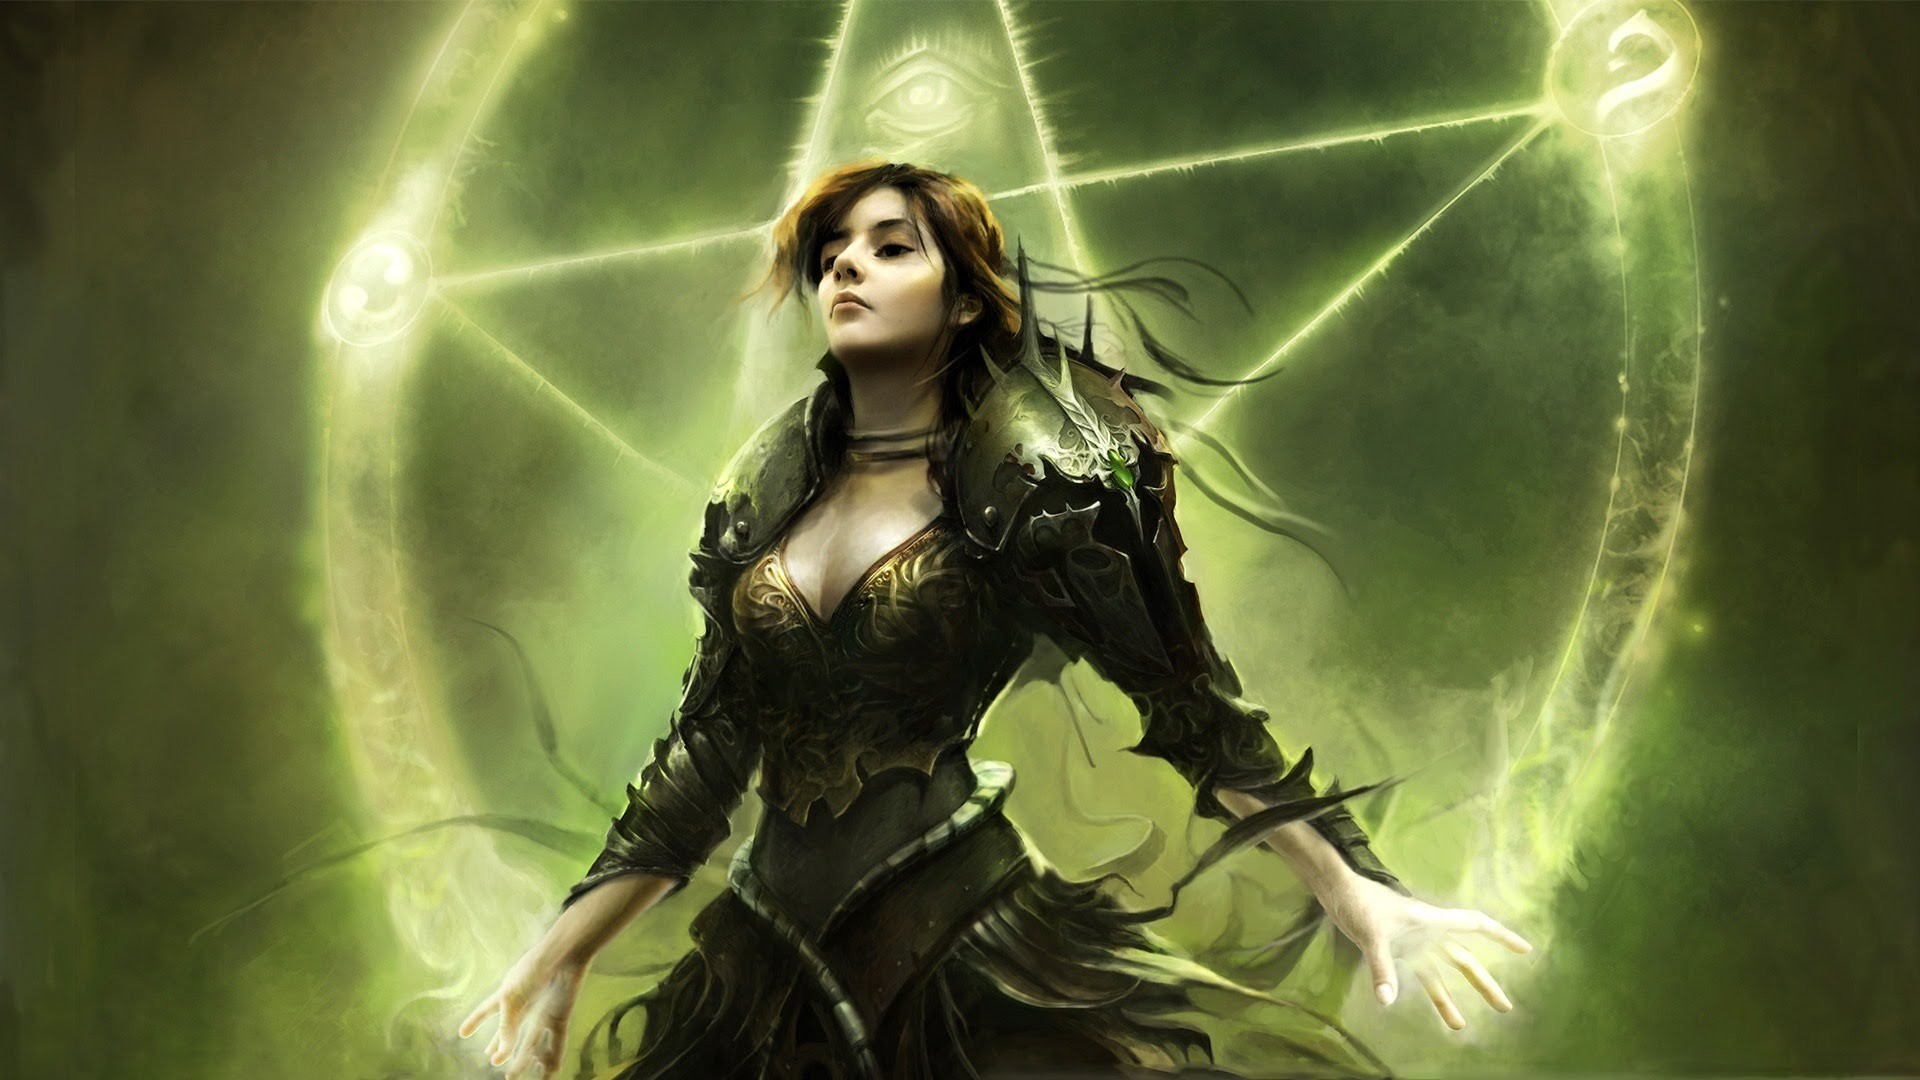 Witches Wallpapers Pictures 76 Images